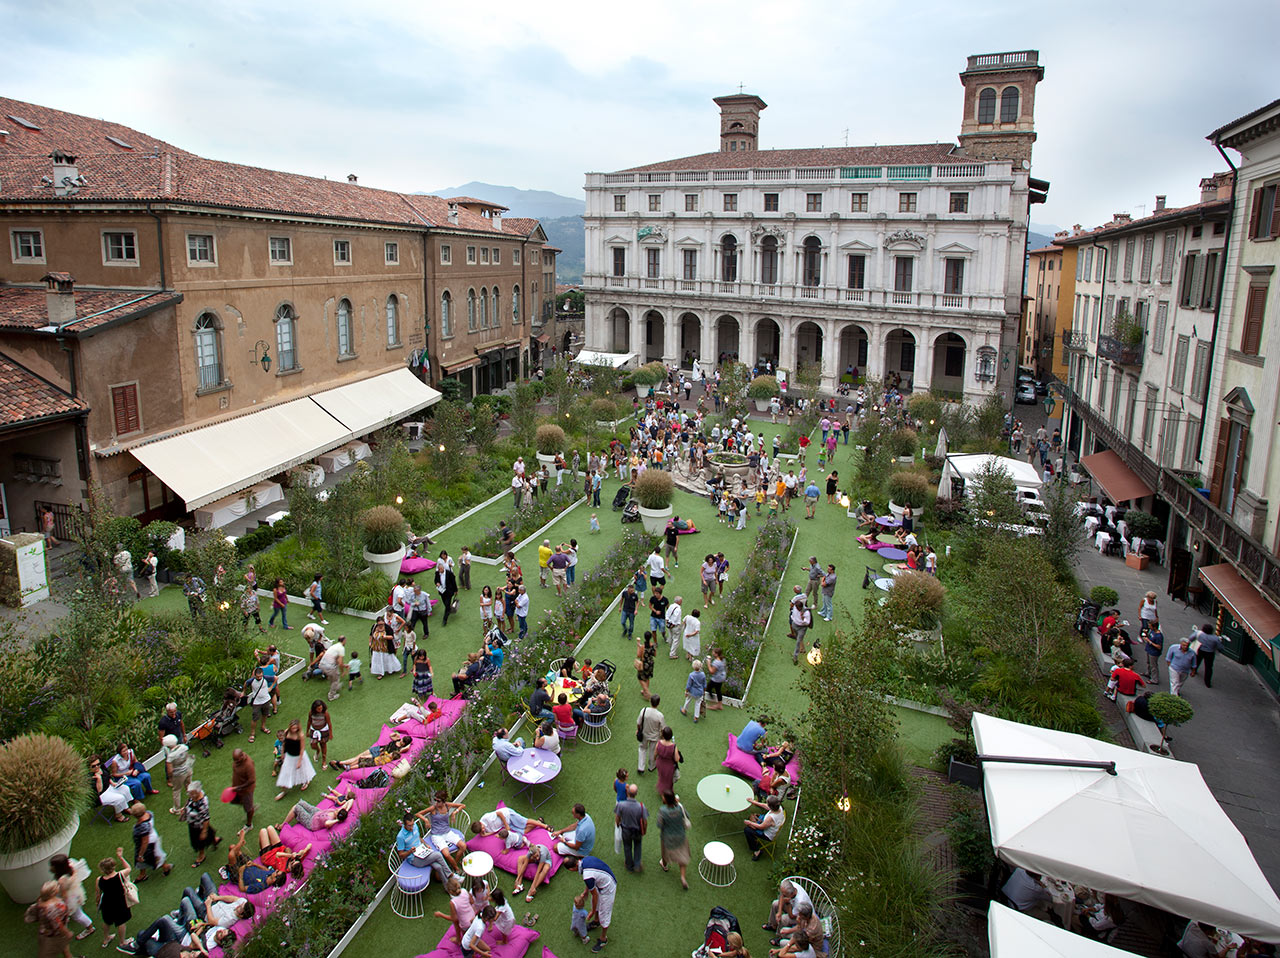 I Maestri del Paesaggio 2016 - International Meeting of the Landscape and Garden